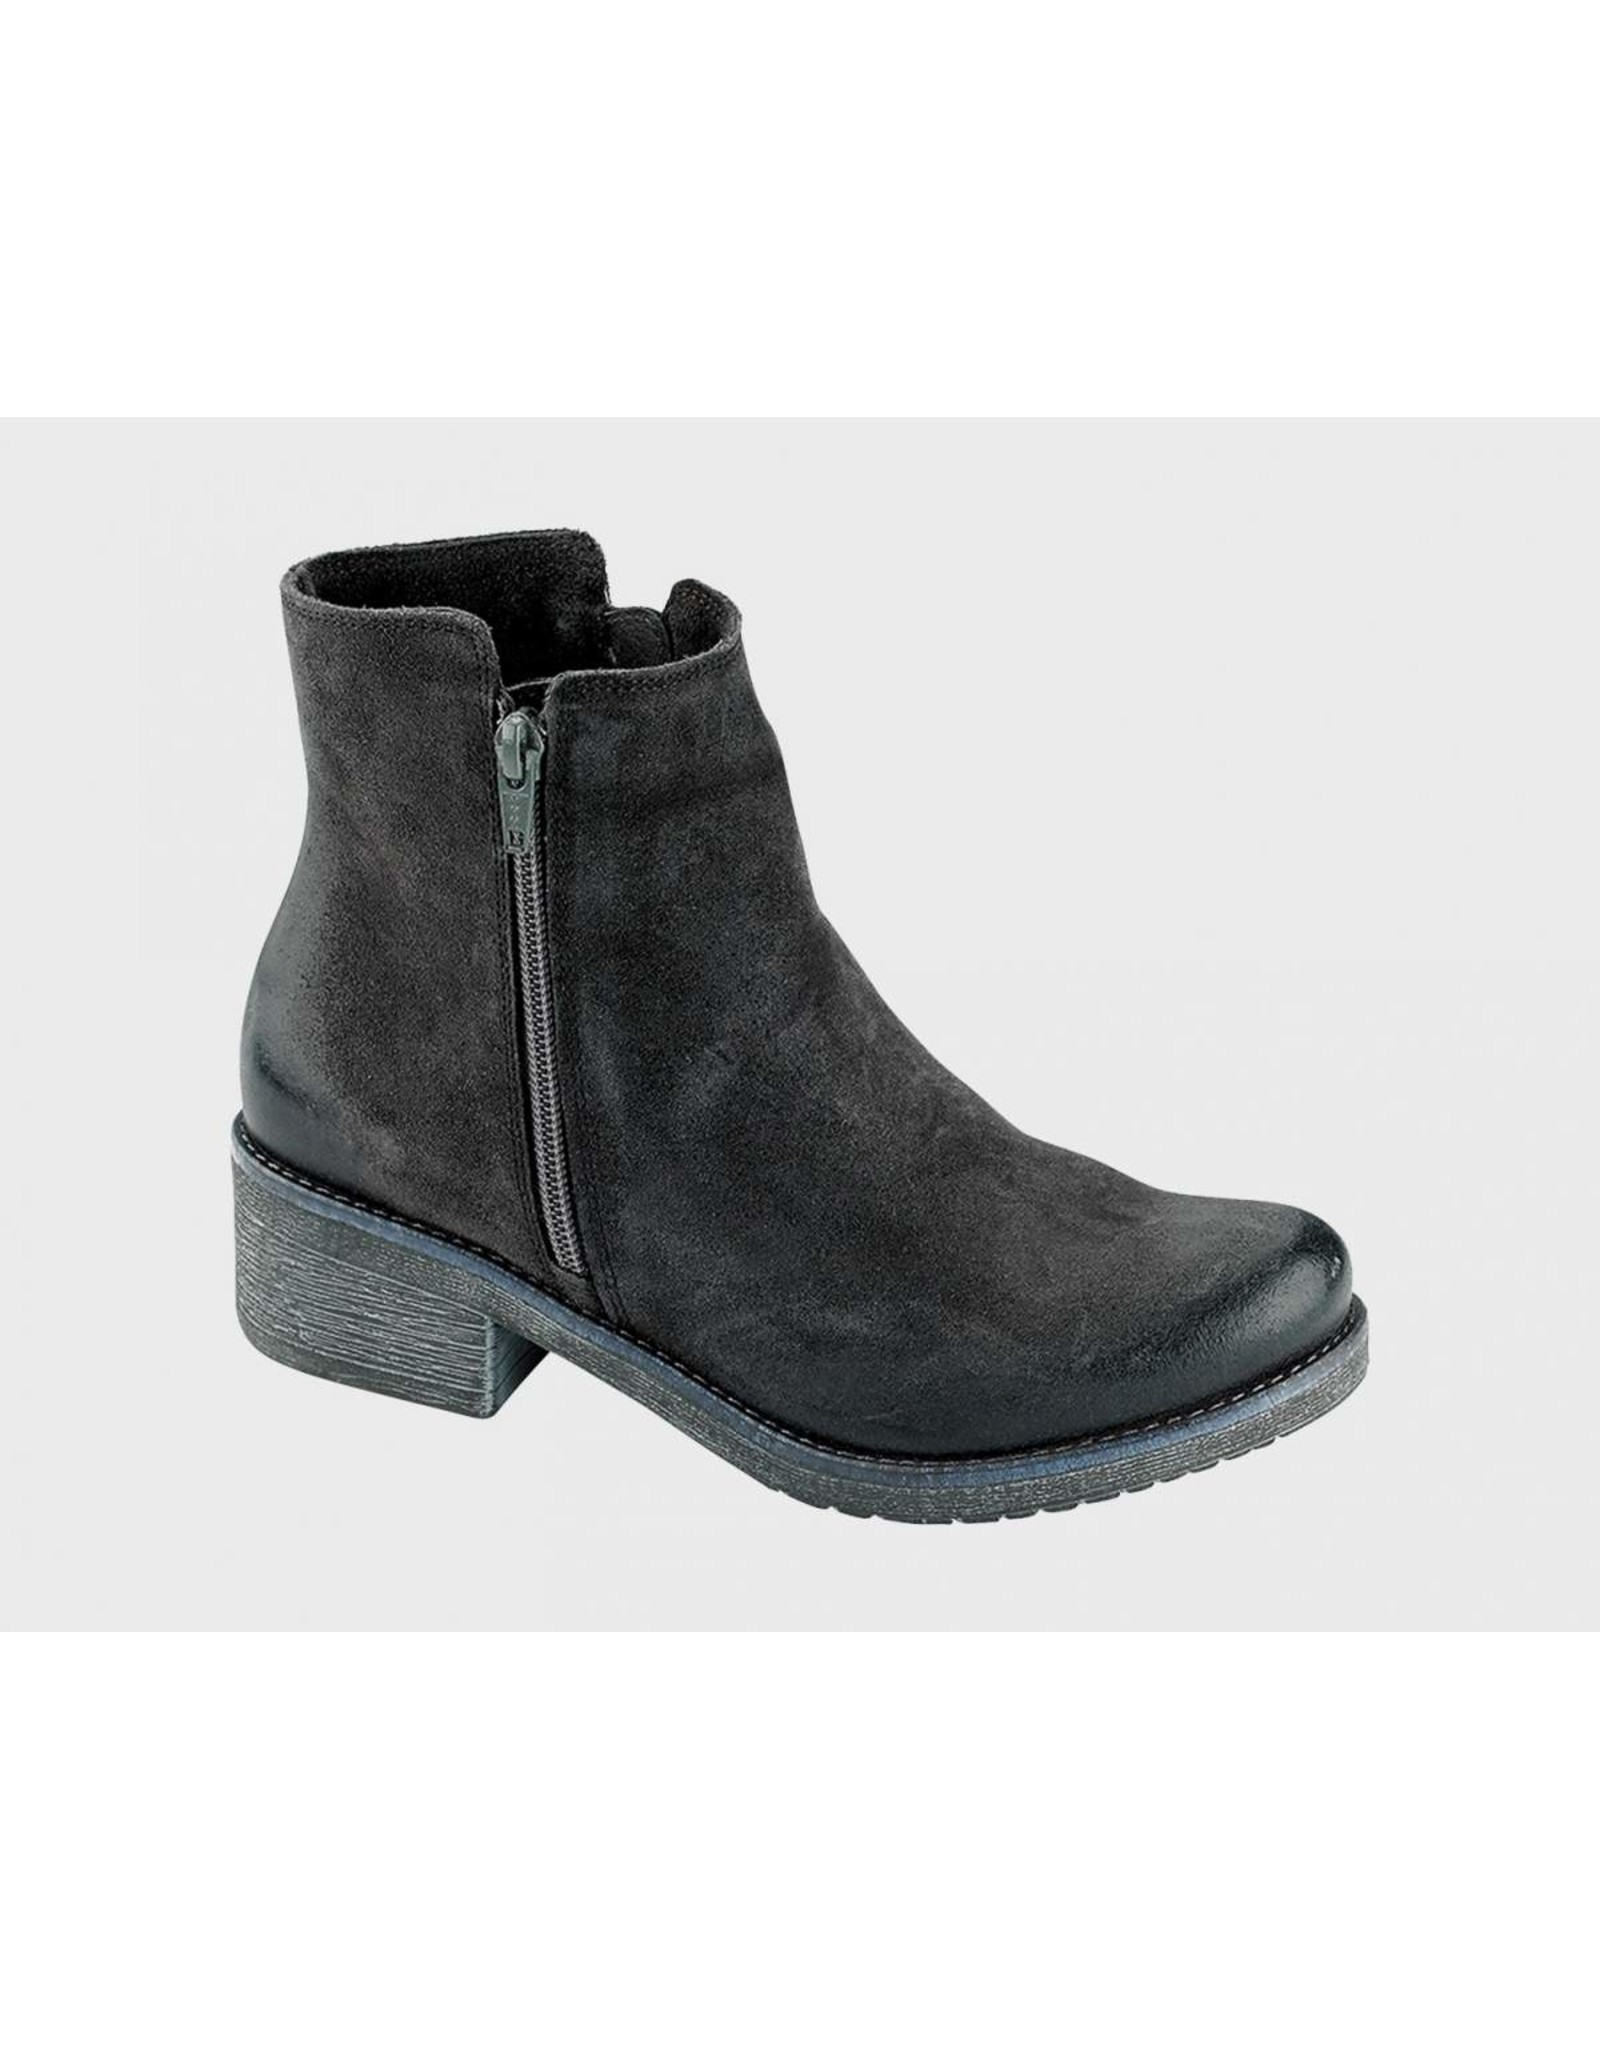 NAOT WOMEN'S WANDER-BRUSHED OILY MIDNIGHT SUEDE